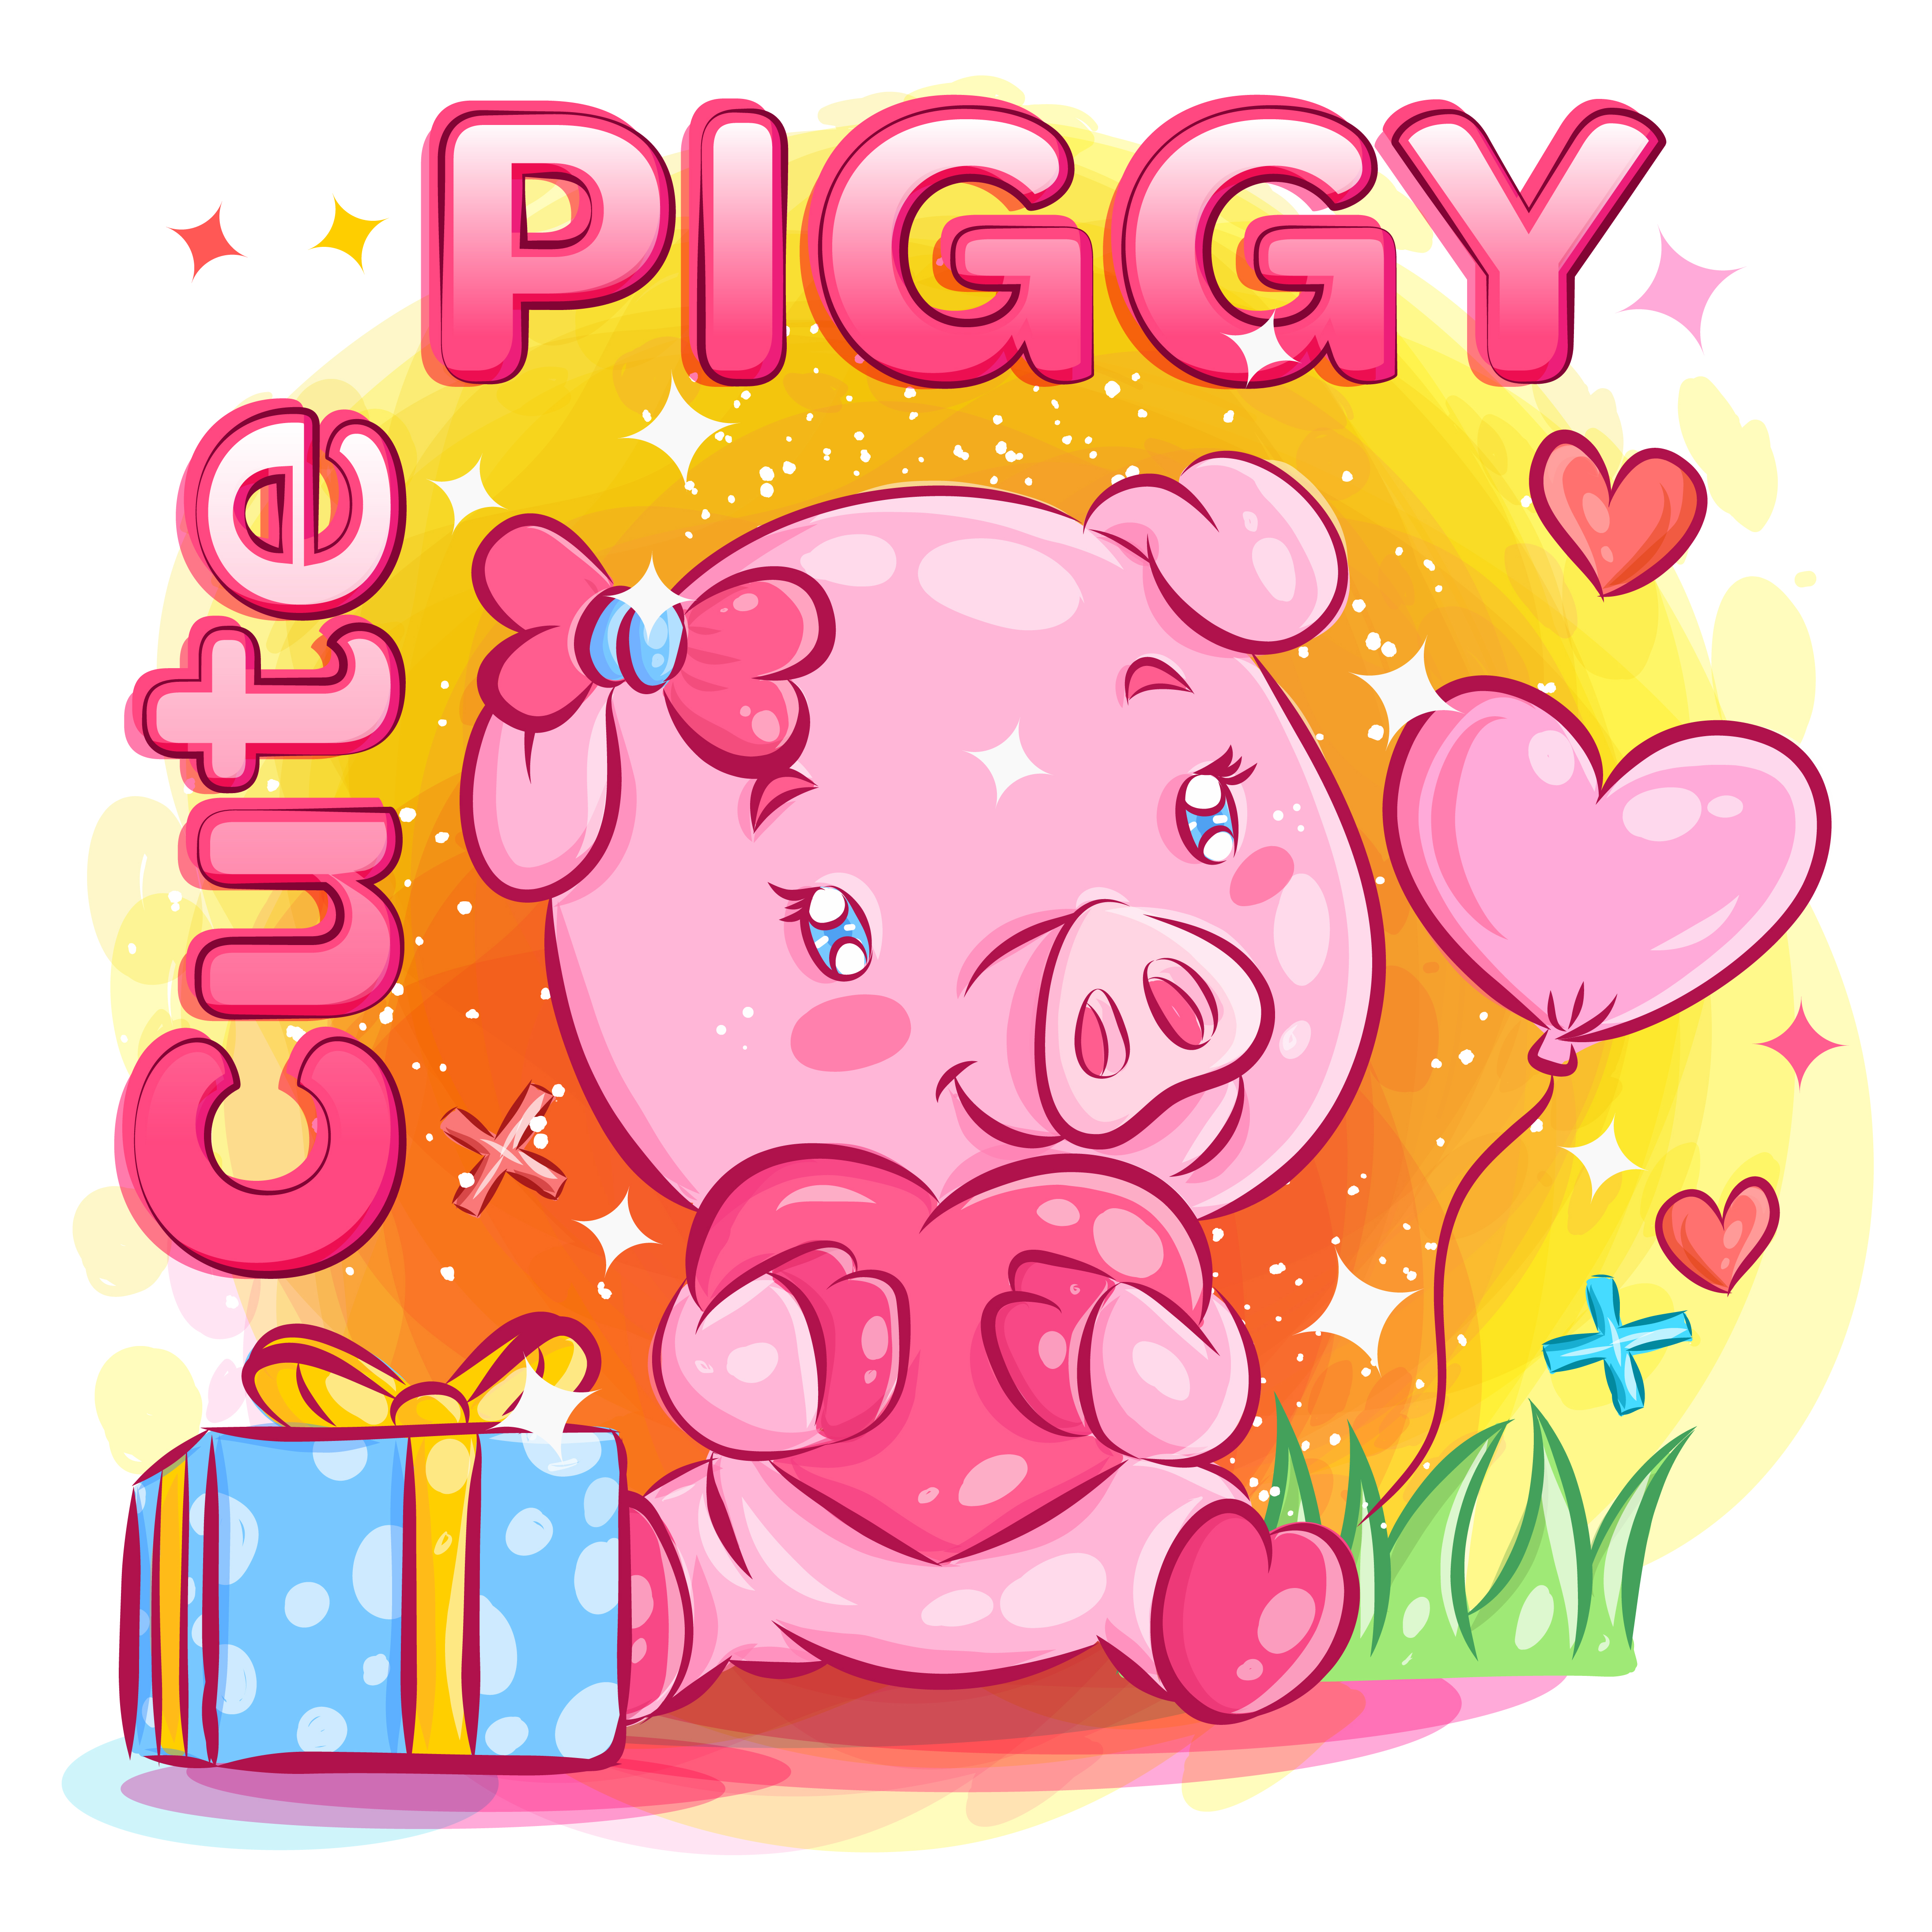 Cute Male Pig Feeling in Love with Valentine's Gift vector